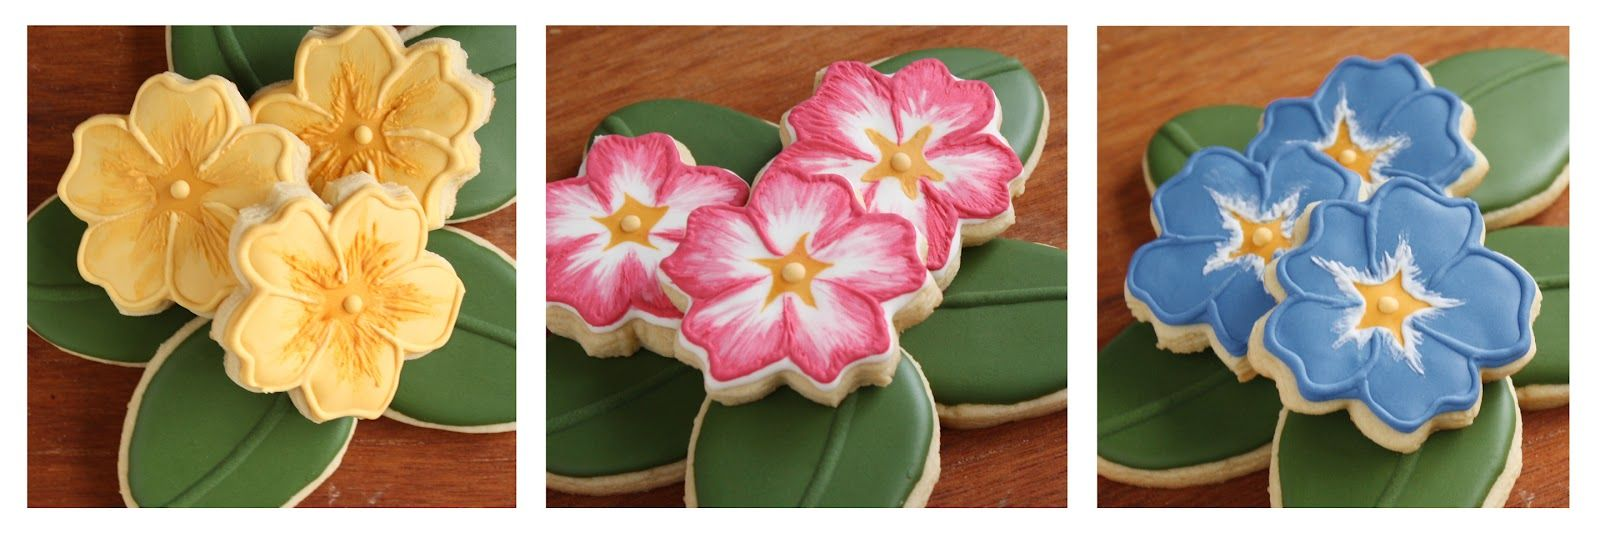 look what you can do decorating cookies